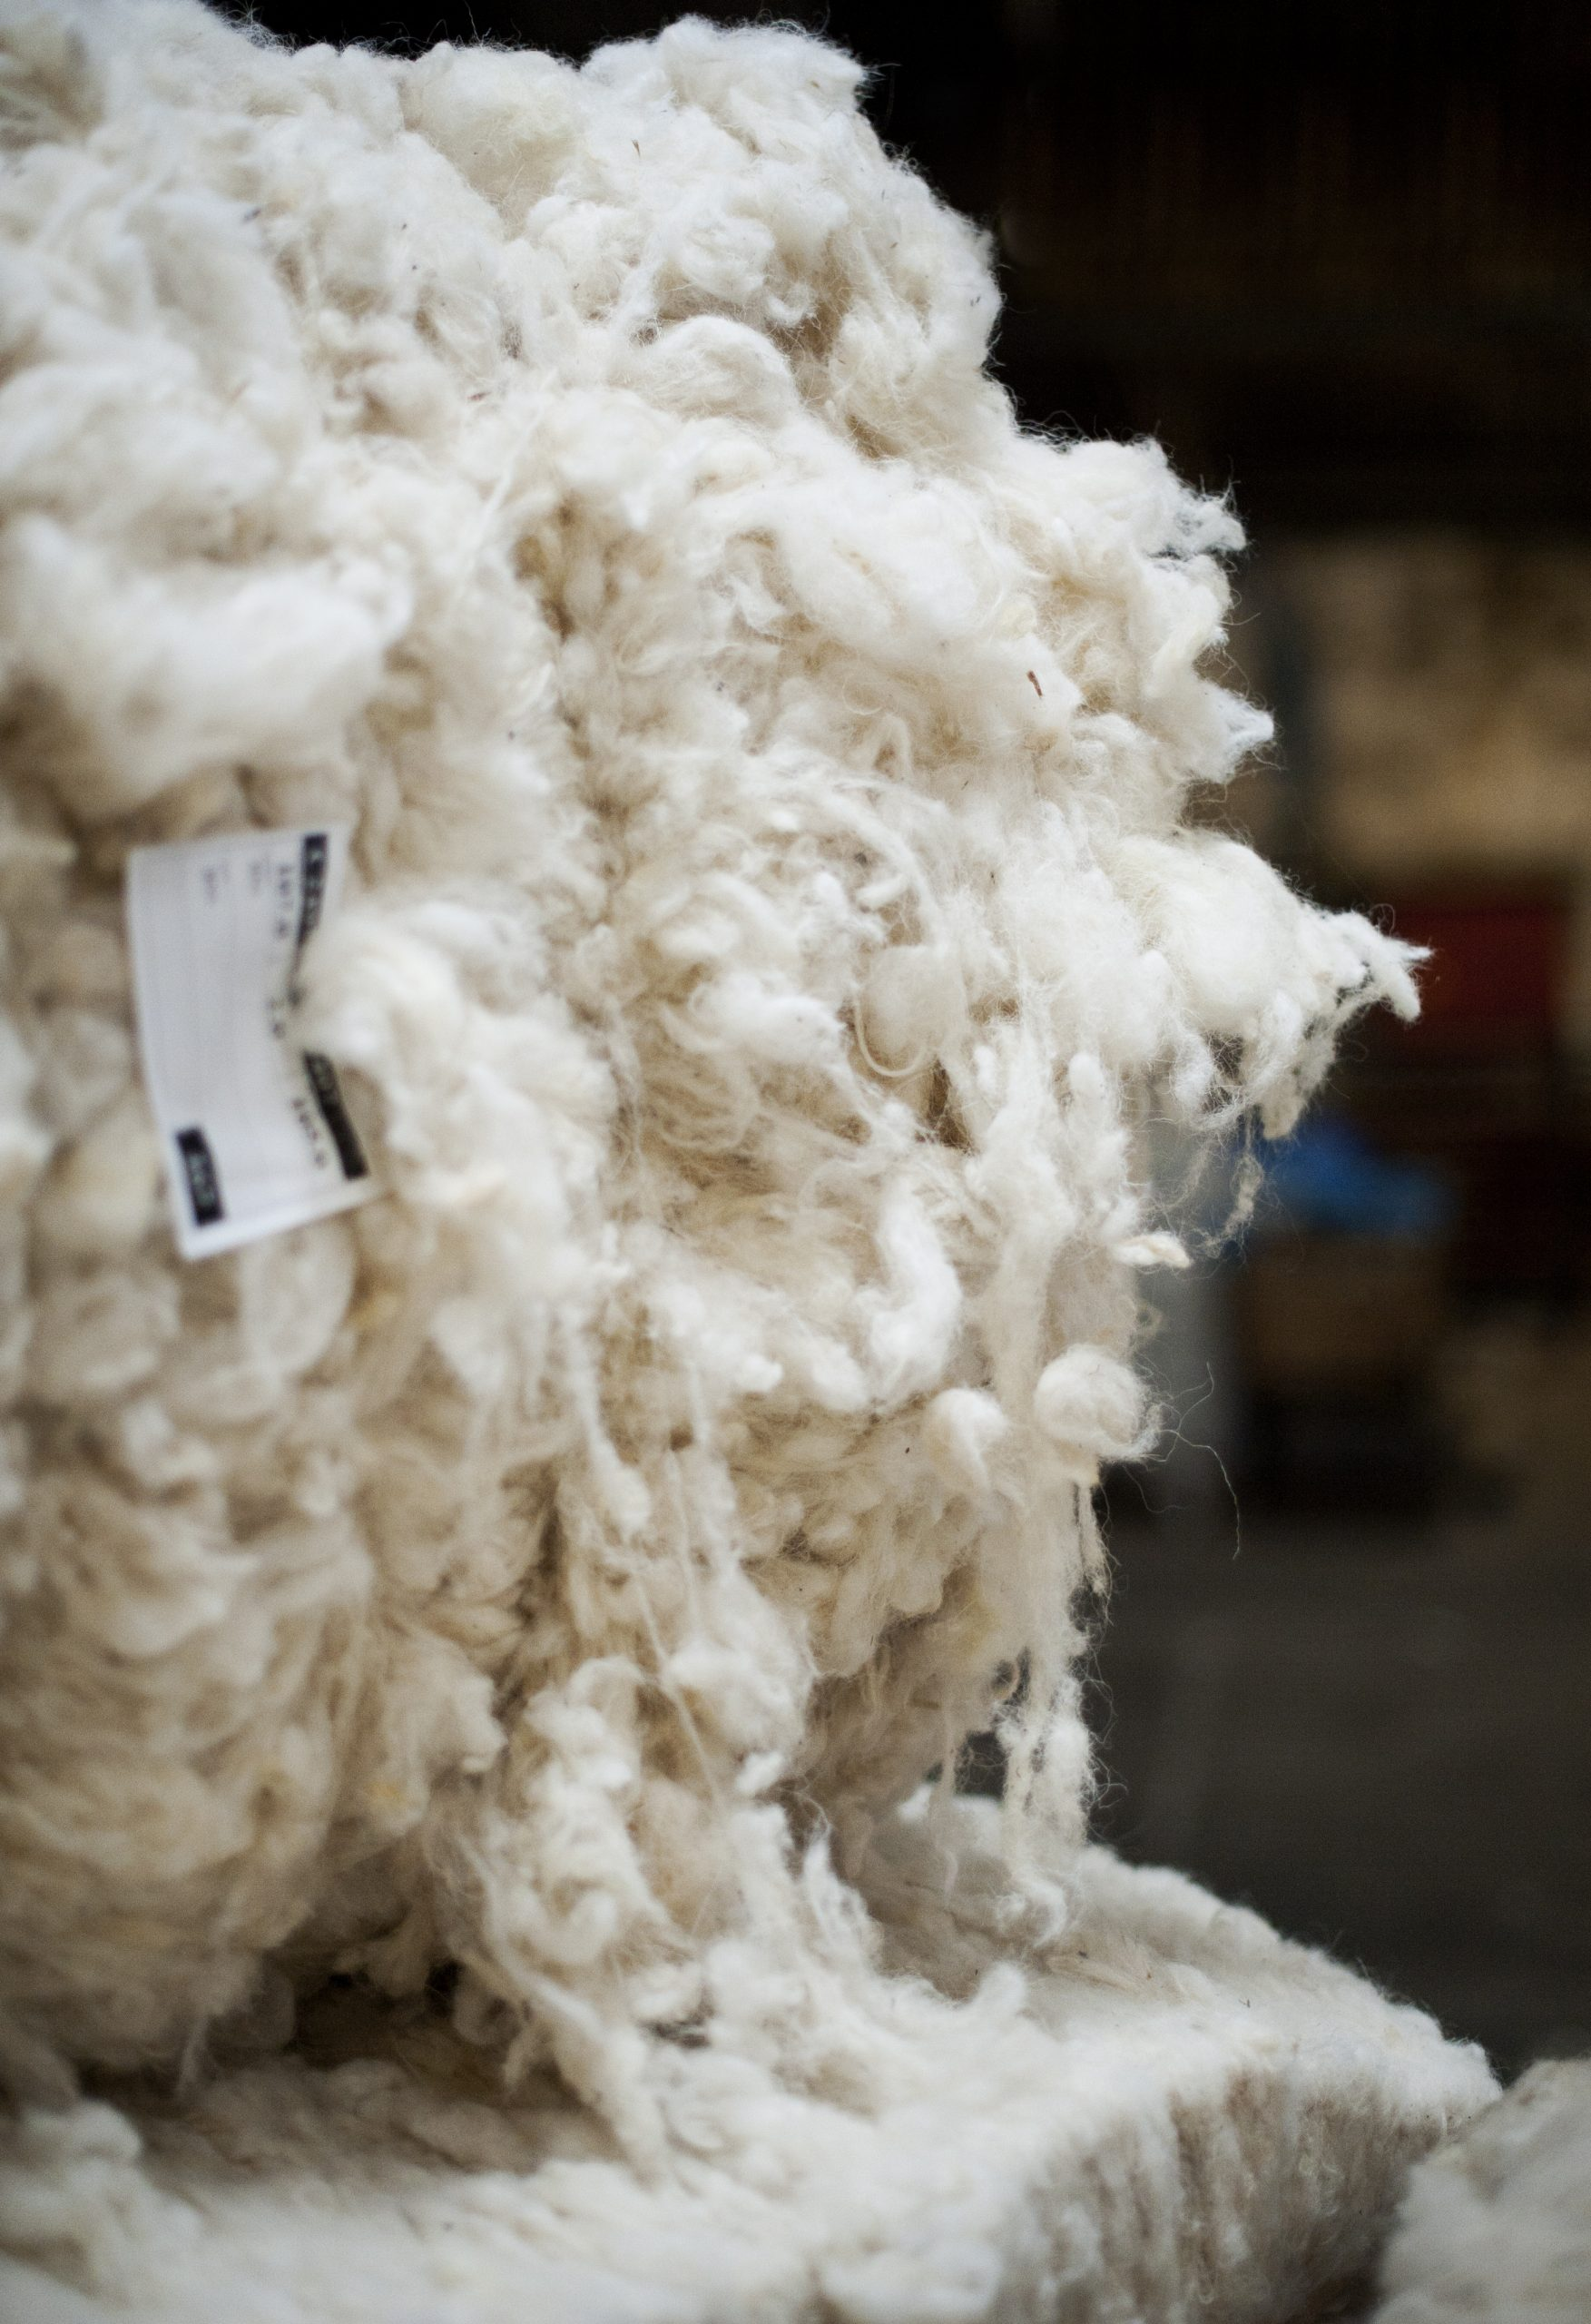 Australian wool Key Test Data Summary for December 2020